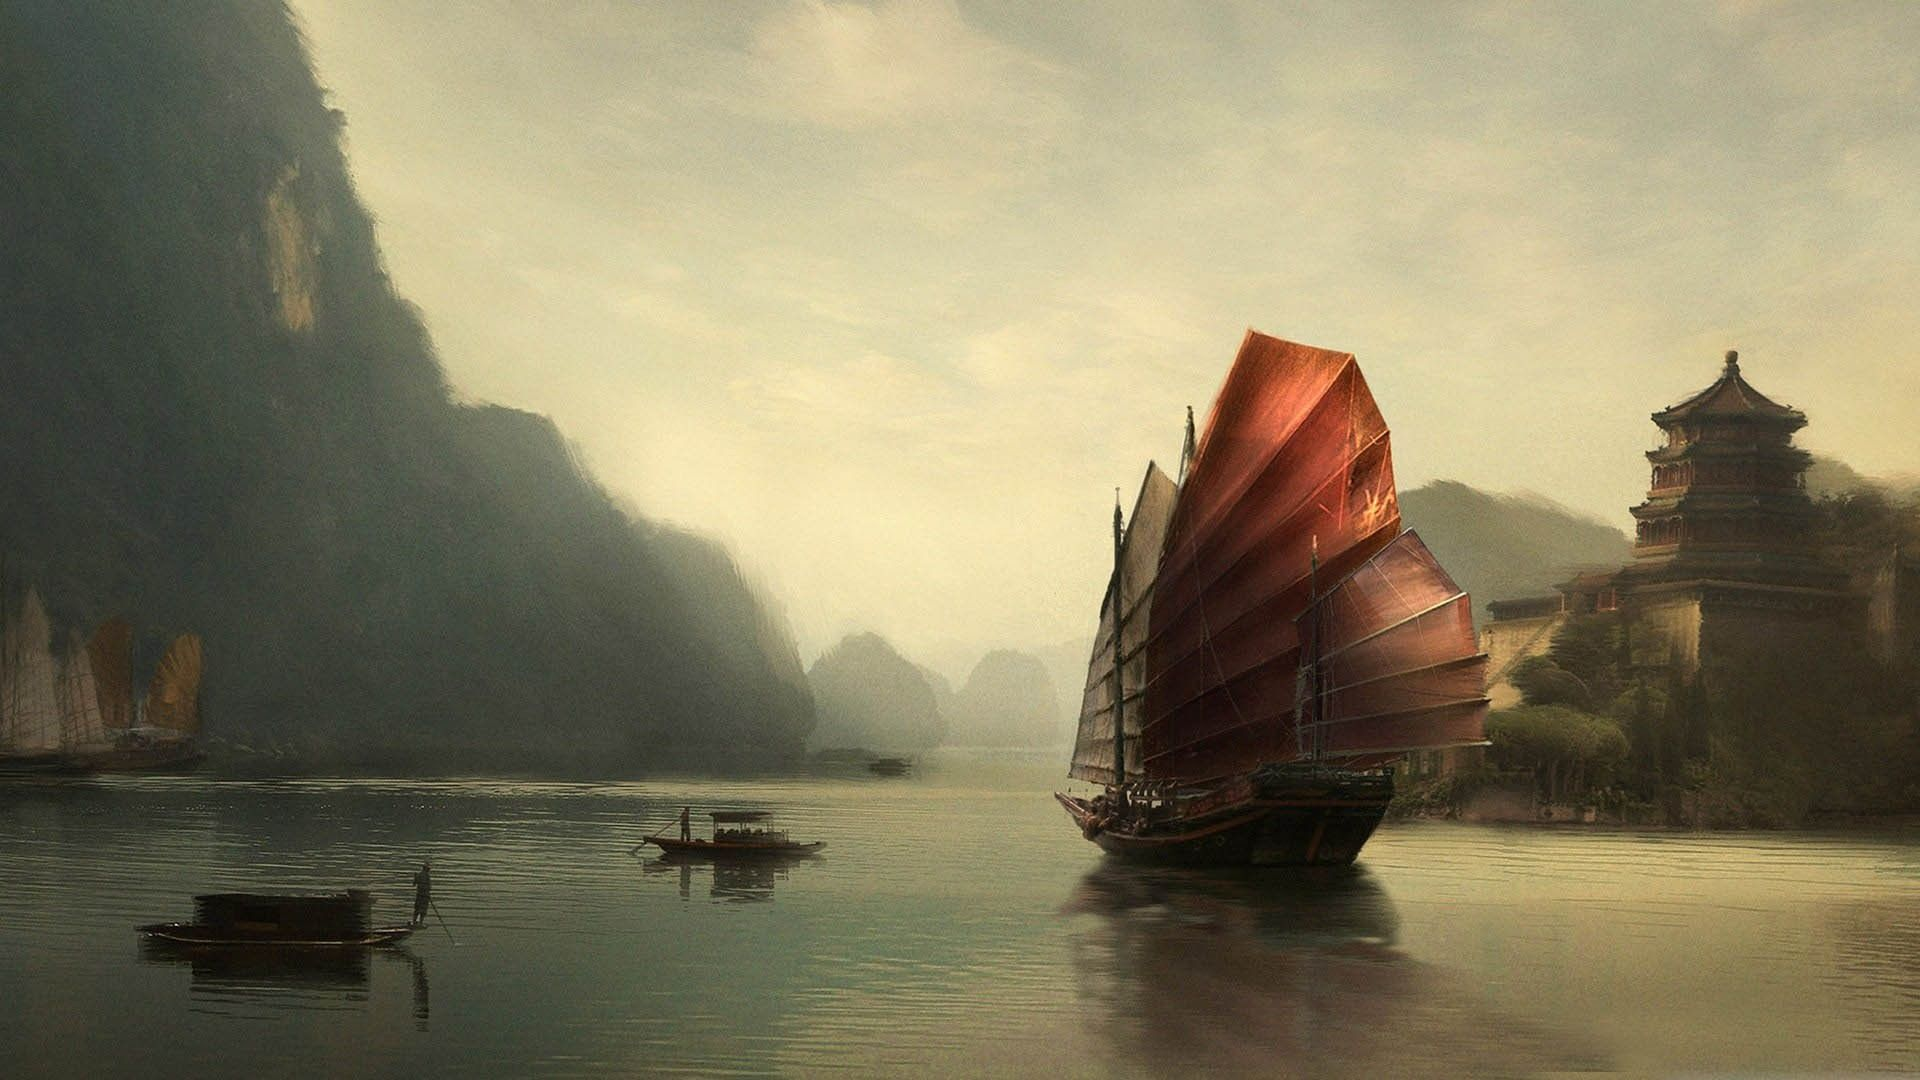 Beautiful China Wallpapers   Top Beautiful China Backgrounds 1920x1080